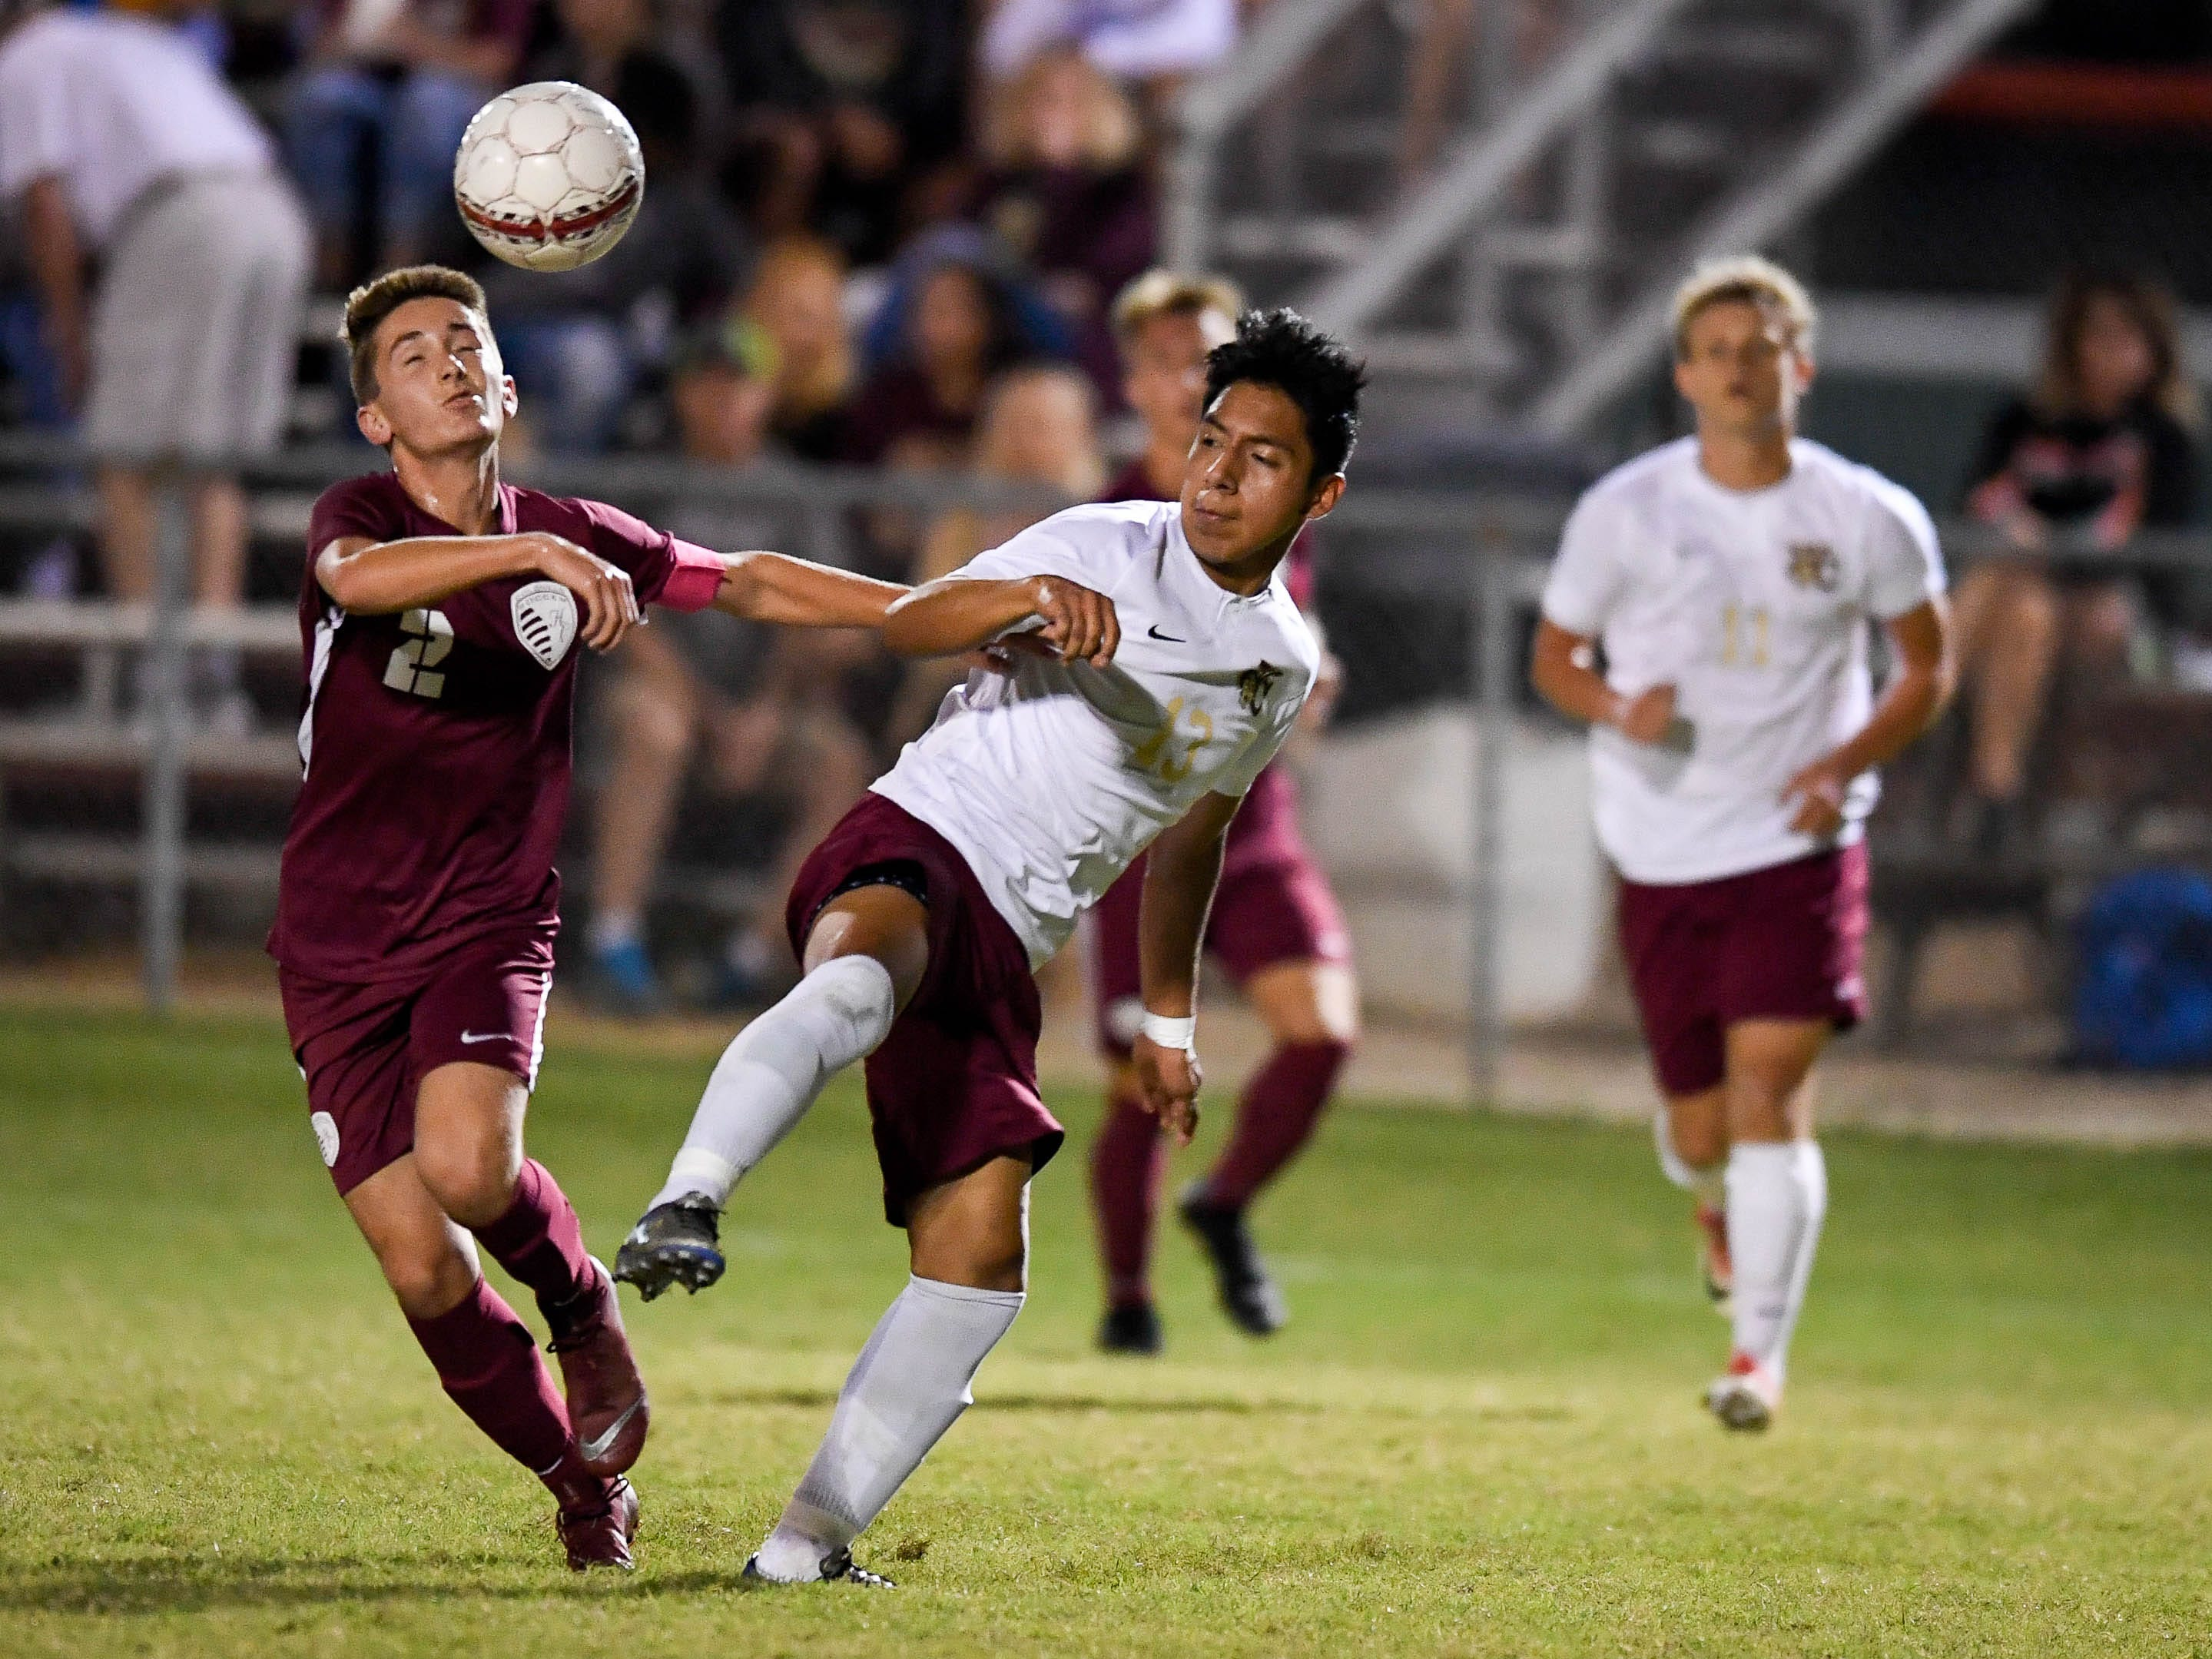 Henderson County's Samuel Cloutier (2) and Webster's Michael Velazquez (13) try to control the ball as the Henderson County Colonels play the Webster County Trojans in the Sixth District Soccer Tournament at Colonel Field Wednesday, October 10, 2018.